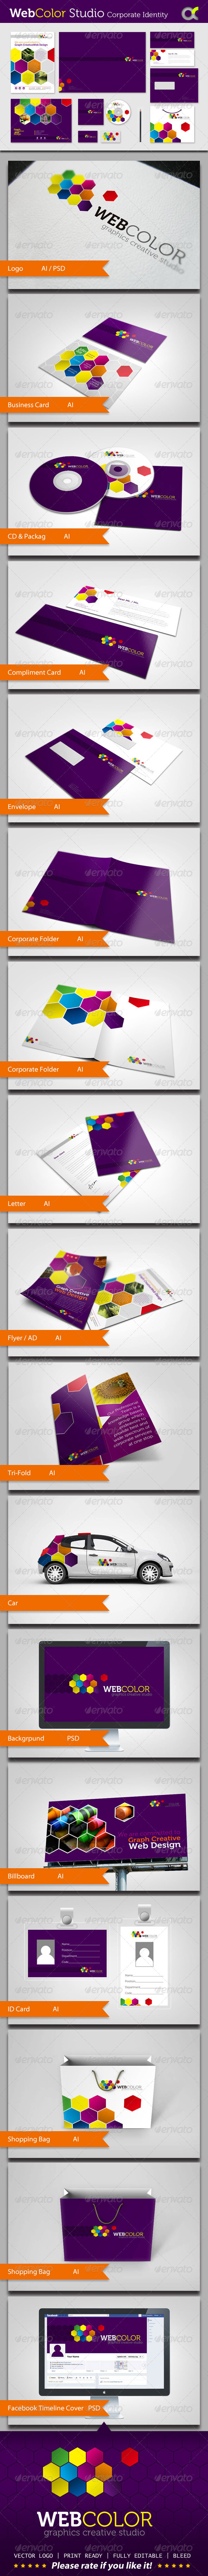 GraphicRiver WebColor Studio Corporate Identity 5361145